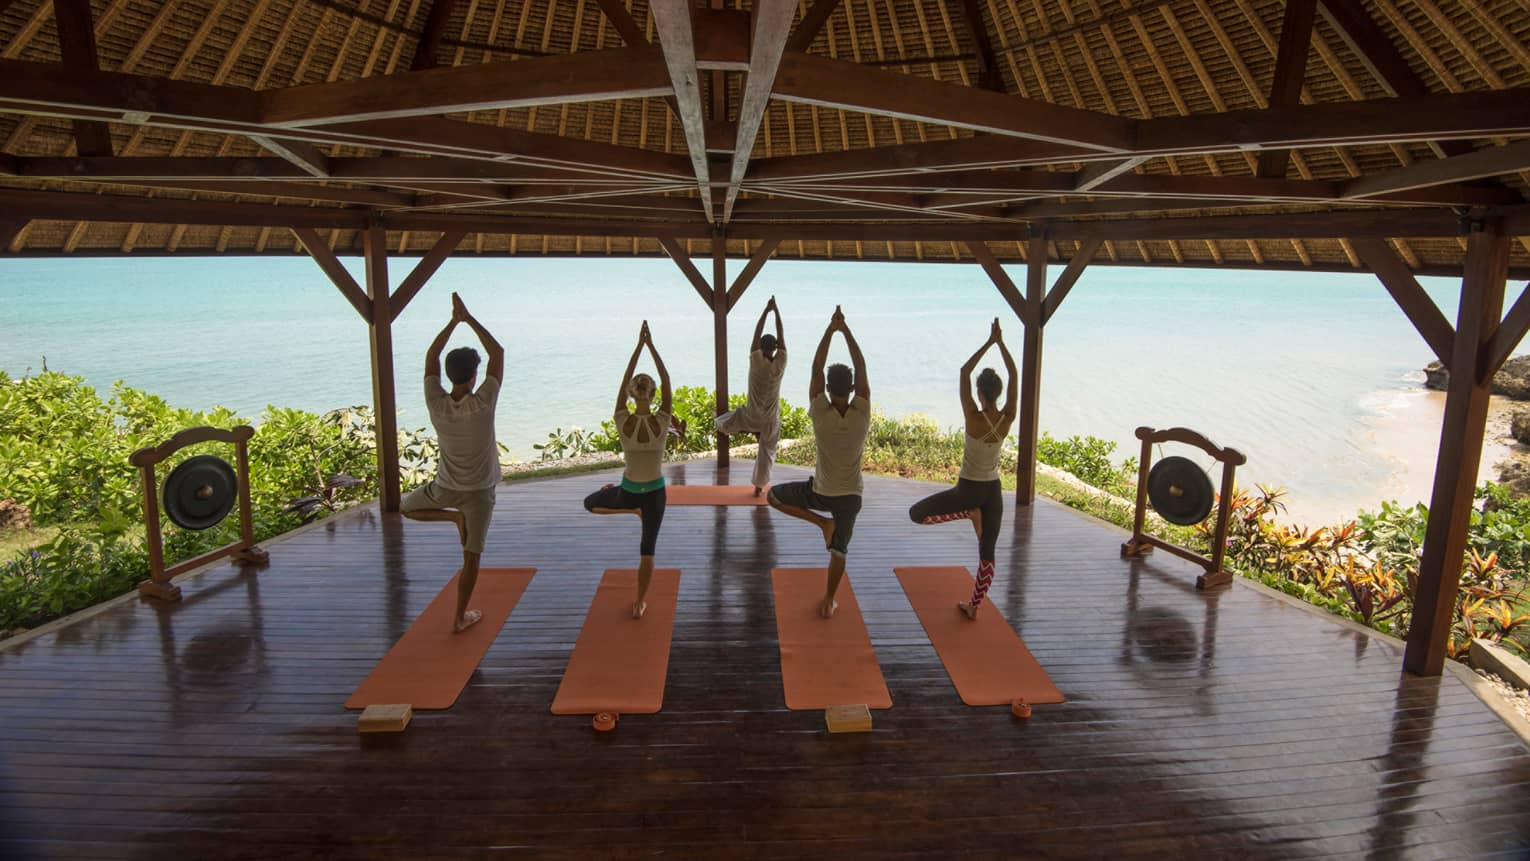 Four people stand in yoga poses, on mats in front of instructor under wood gazebo near ocean